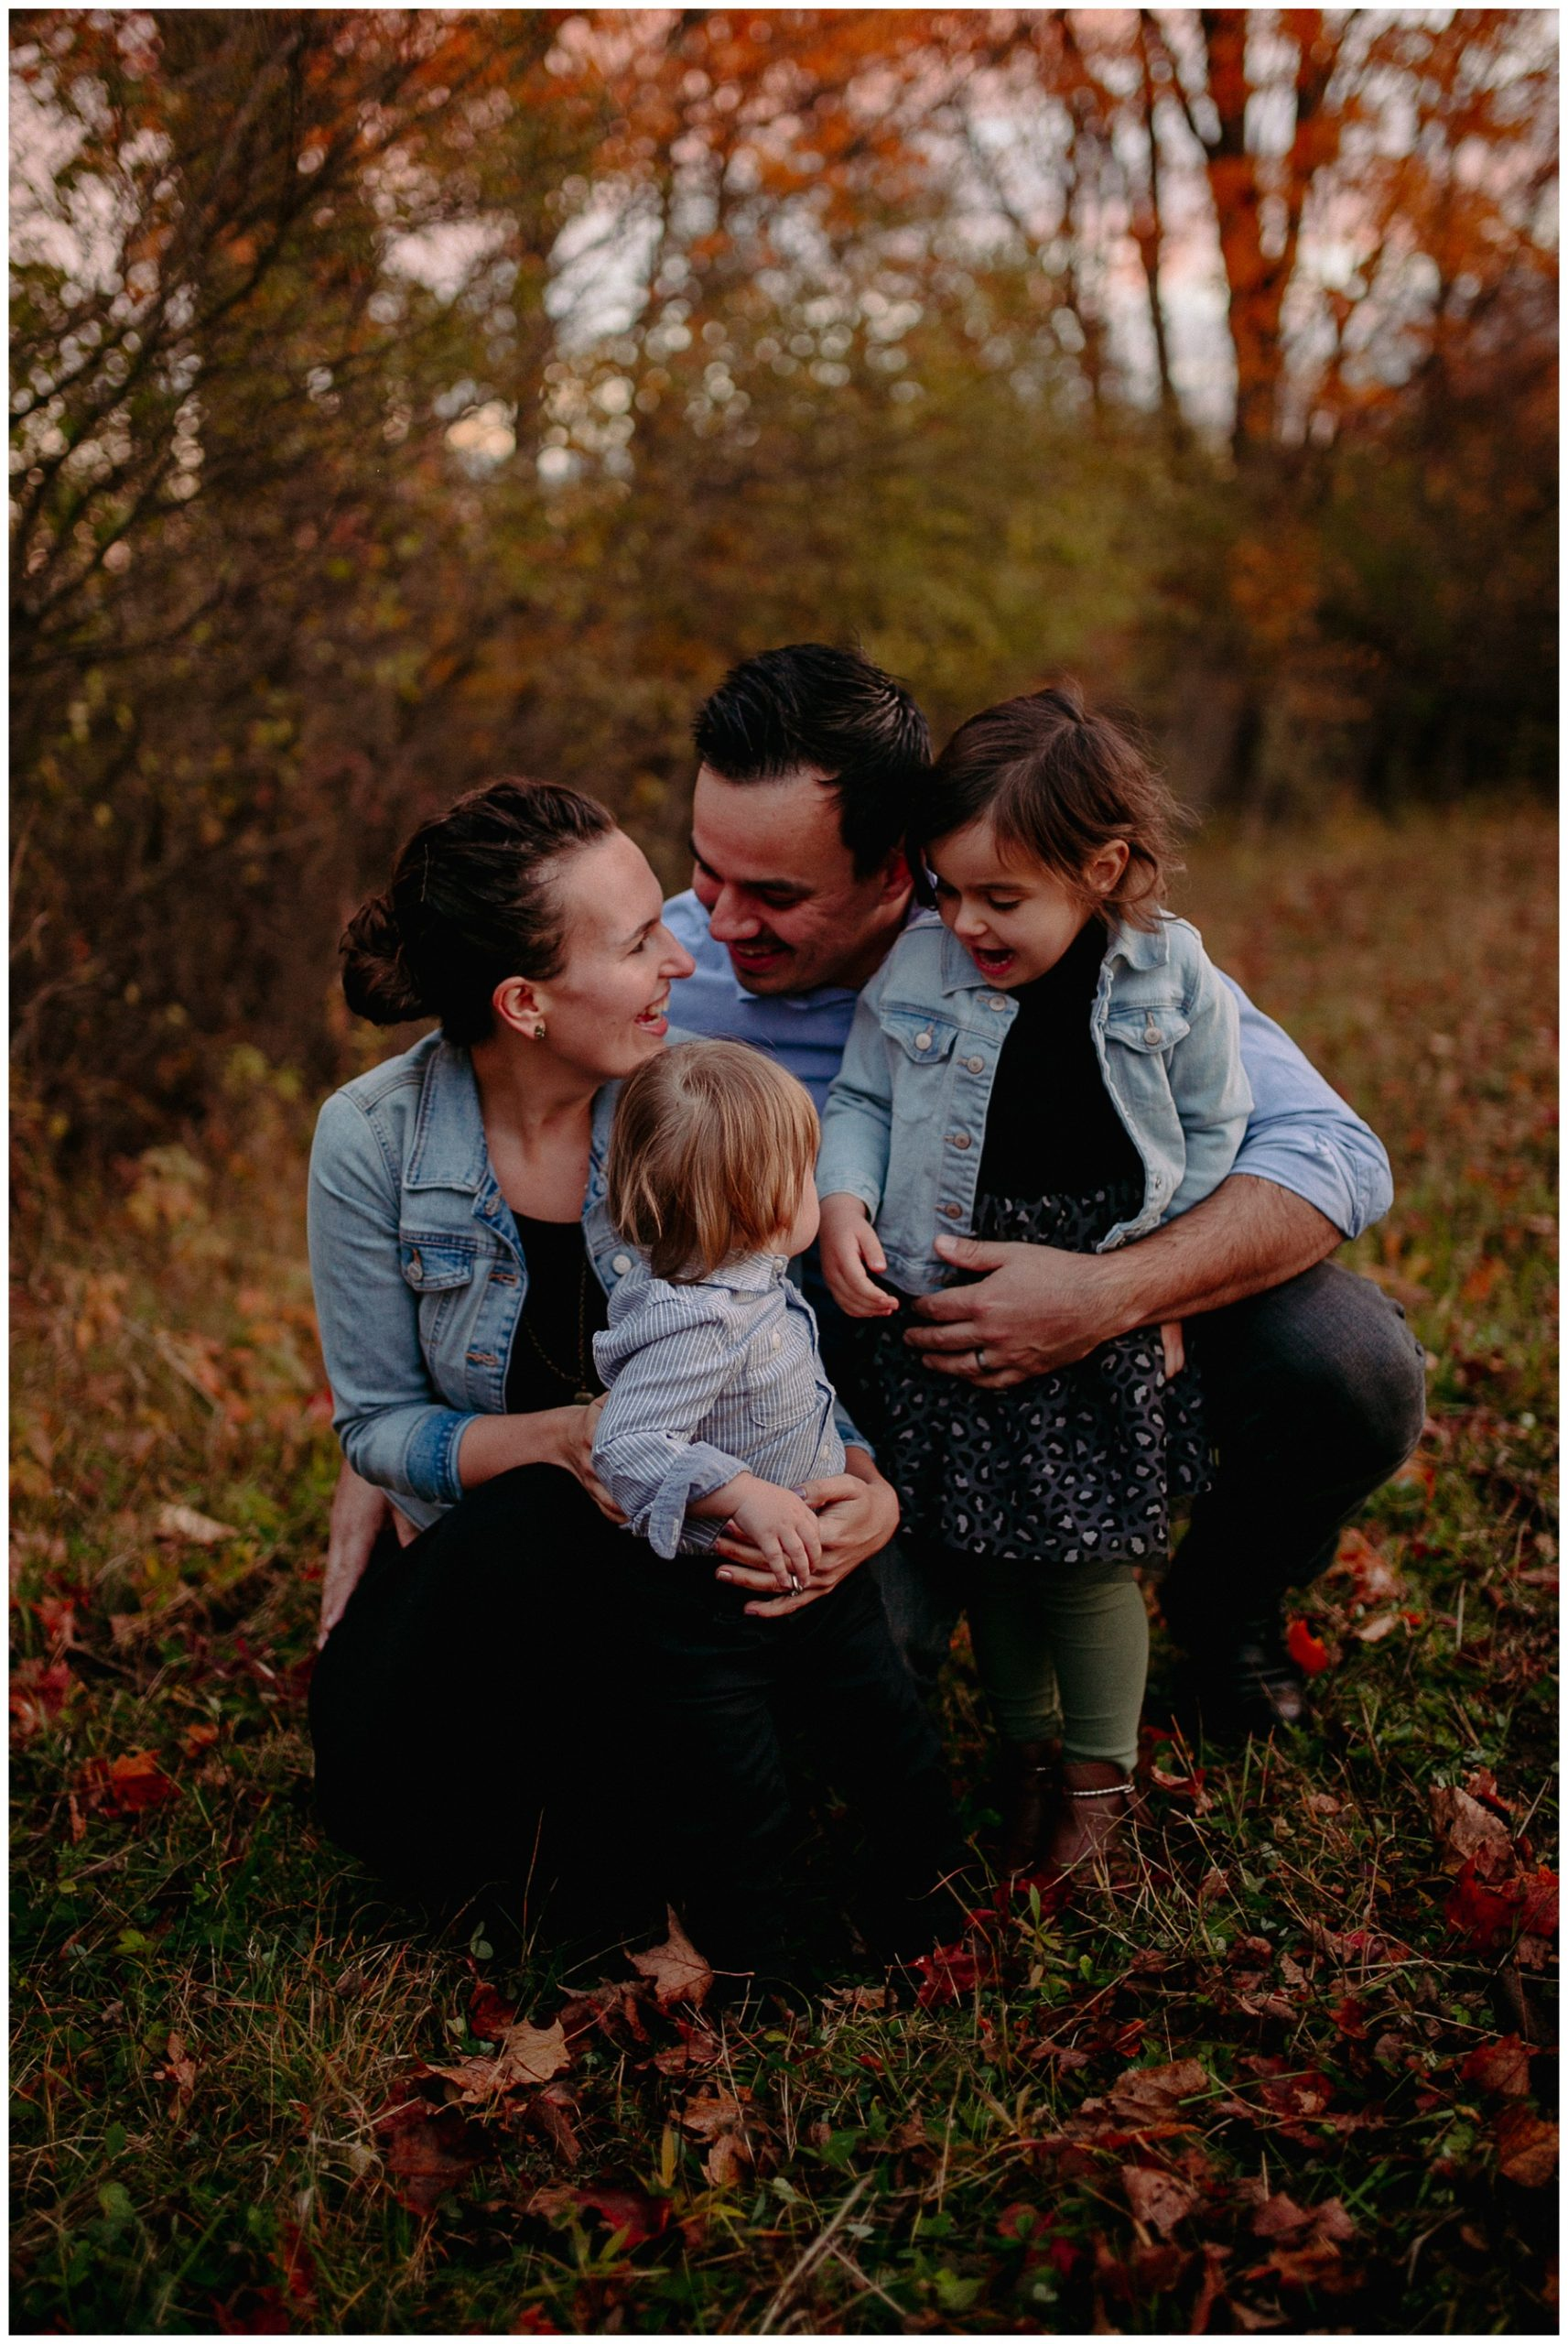 kerry ford photography - fall autumn family session perth043.jpg